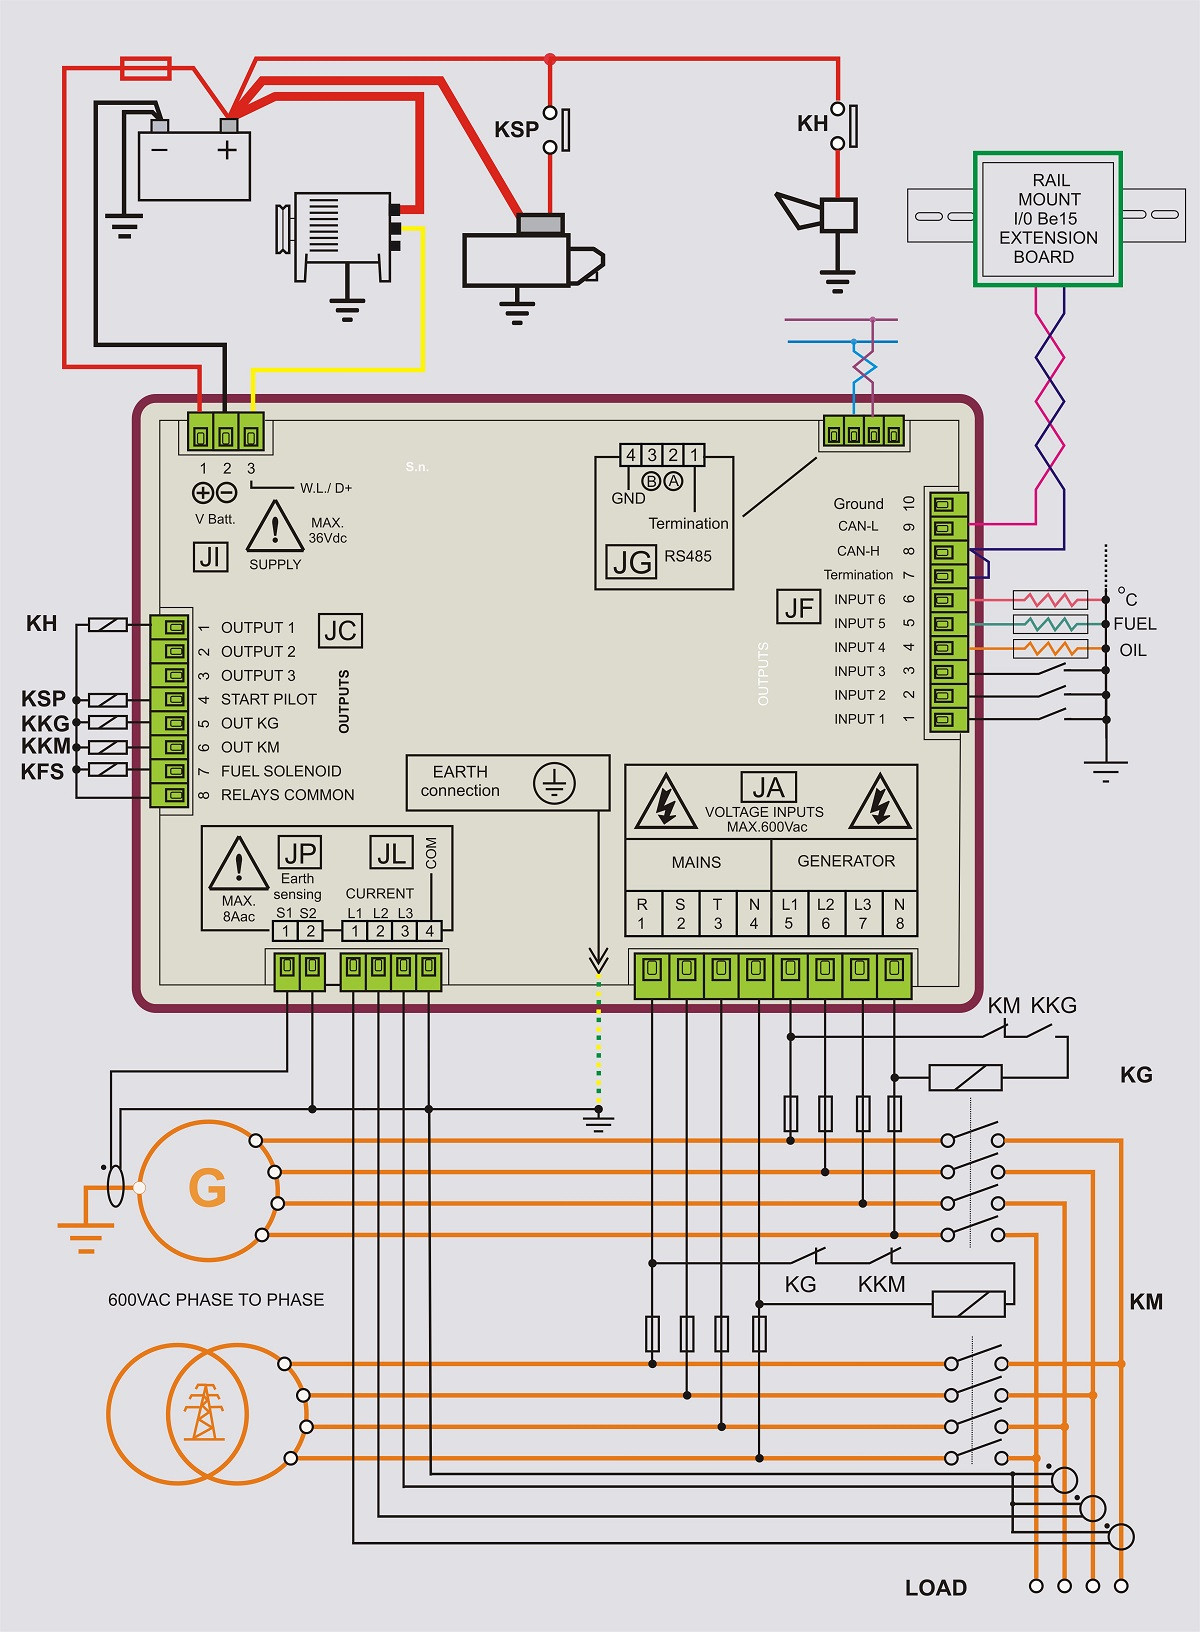 true twt 27f wiring diagram true twt 27f wiring diagram